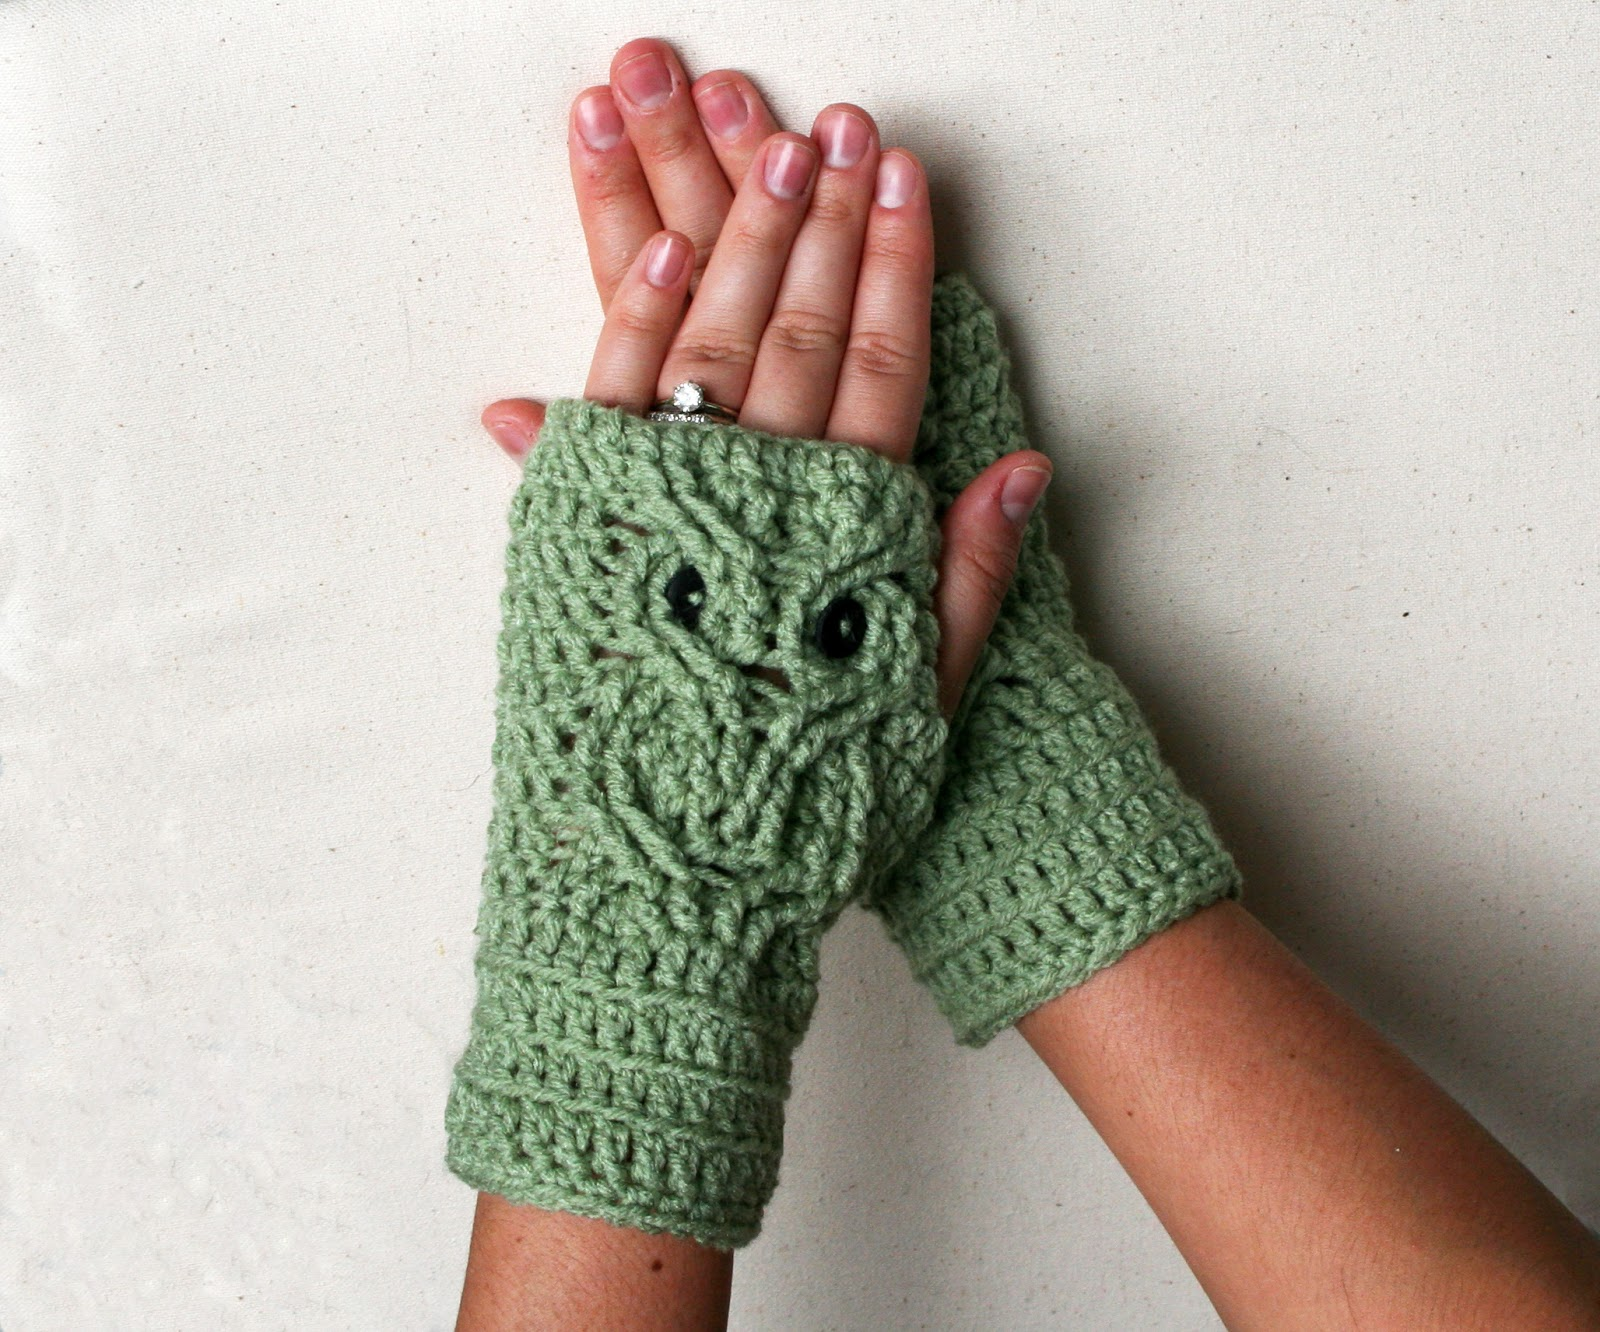 Crochet Patterns Gloves Fingerless : Tampa Bay Crochet: Free Crochet Pattern: Owl Fingerless Gloves